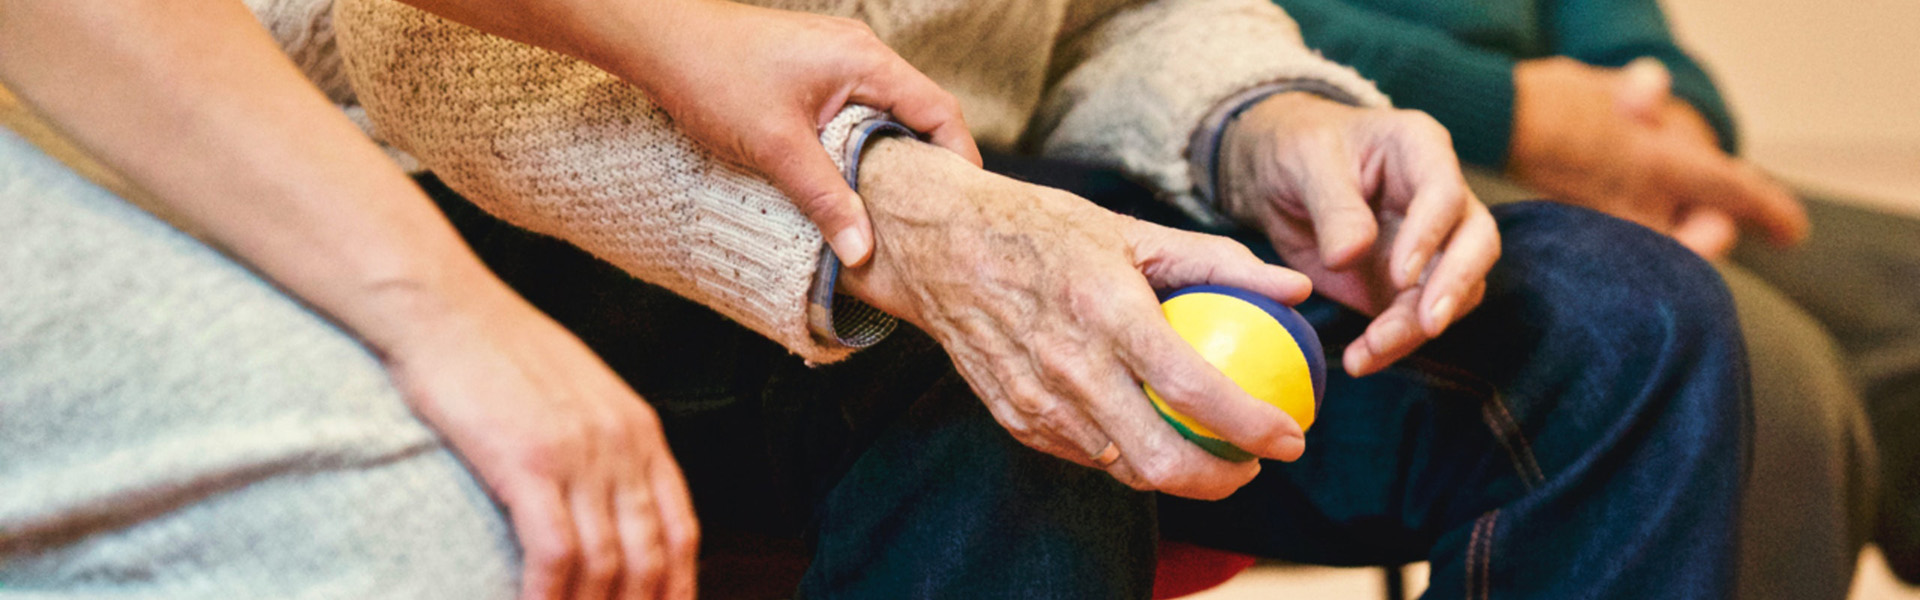 Stock photograph cropped to focus on the people sitting and their hands - one person is holding the elder's wrist as if supporting them.